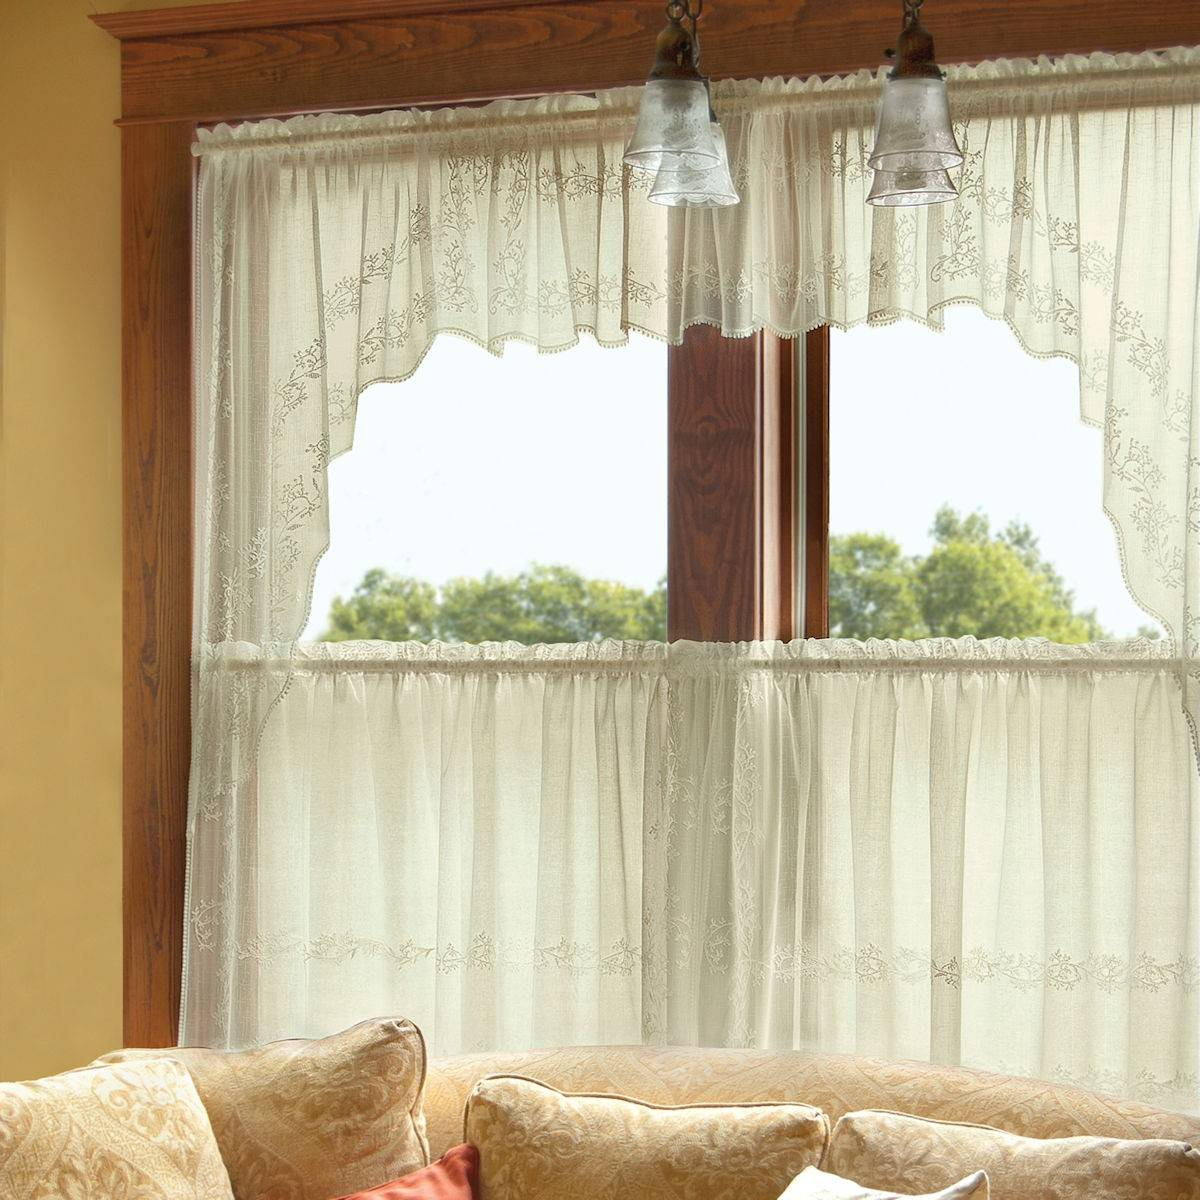 Appealing Lace Curtain Valances And Tiers Ideas Kitchen In Solid Microfiber 3 Piece Kitchen Curtain Valance And Tiers Sets (View 8 of 20)